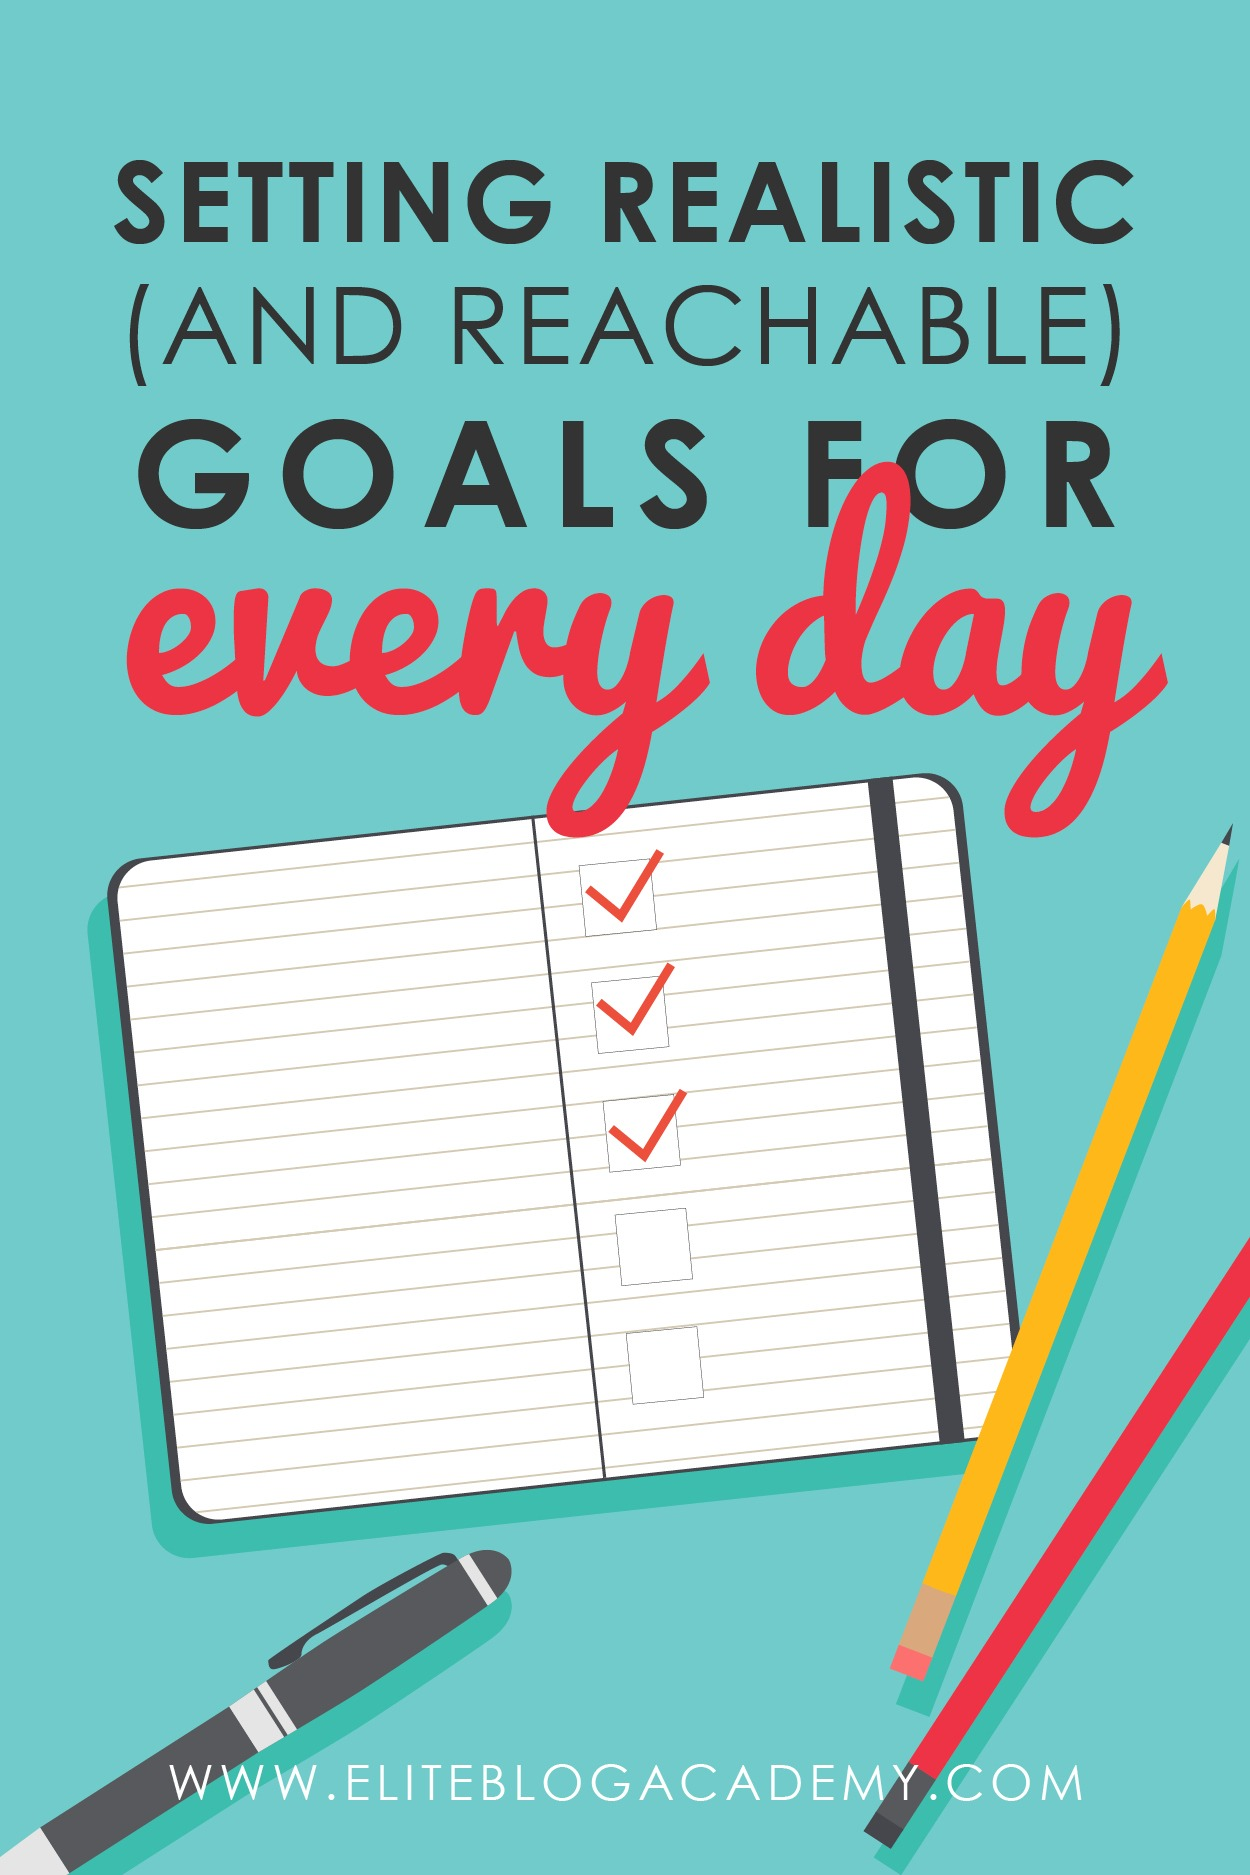 As bloggers, we know we need to have a plan, but how do you actually go about setting realistic and reachable goals each day? Don't miss these three easy to follow steps that will help you get that much closer to crushing it! #eliteblogacademy #goalsetting #thinkbig #bloggingtips #goalcrushing